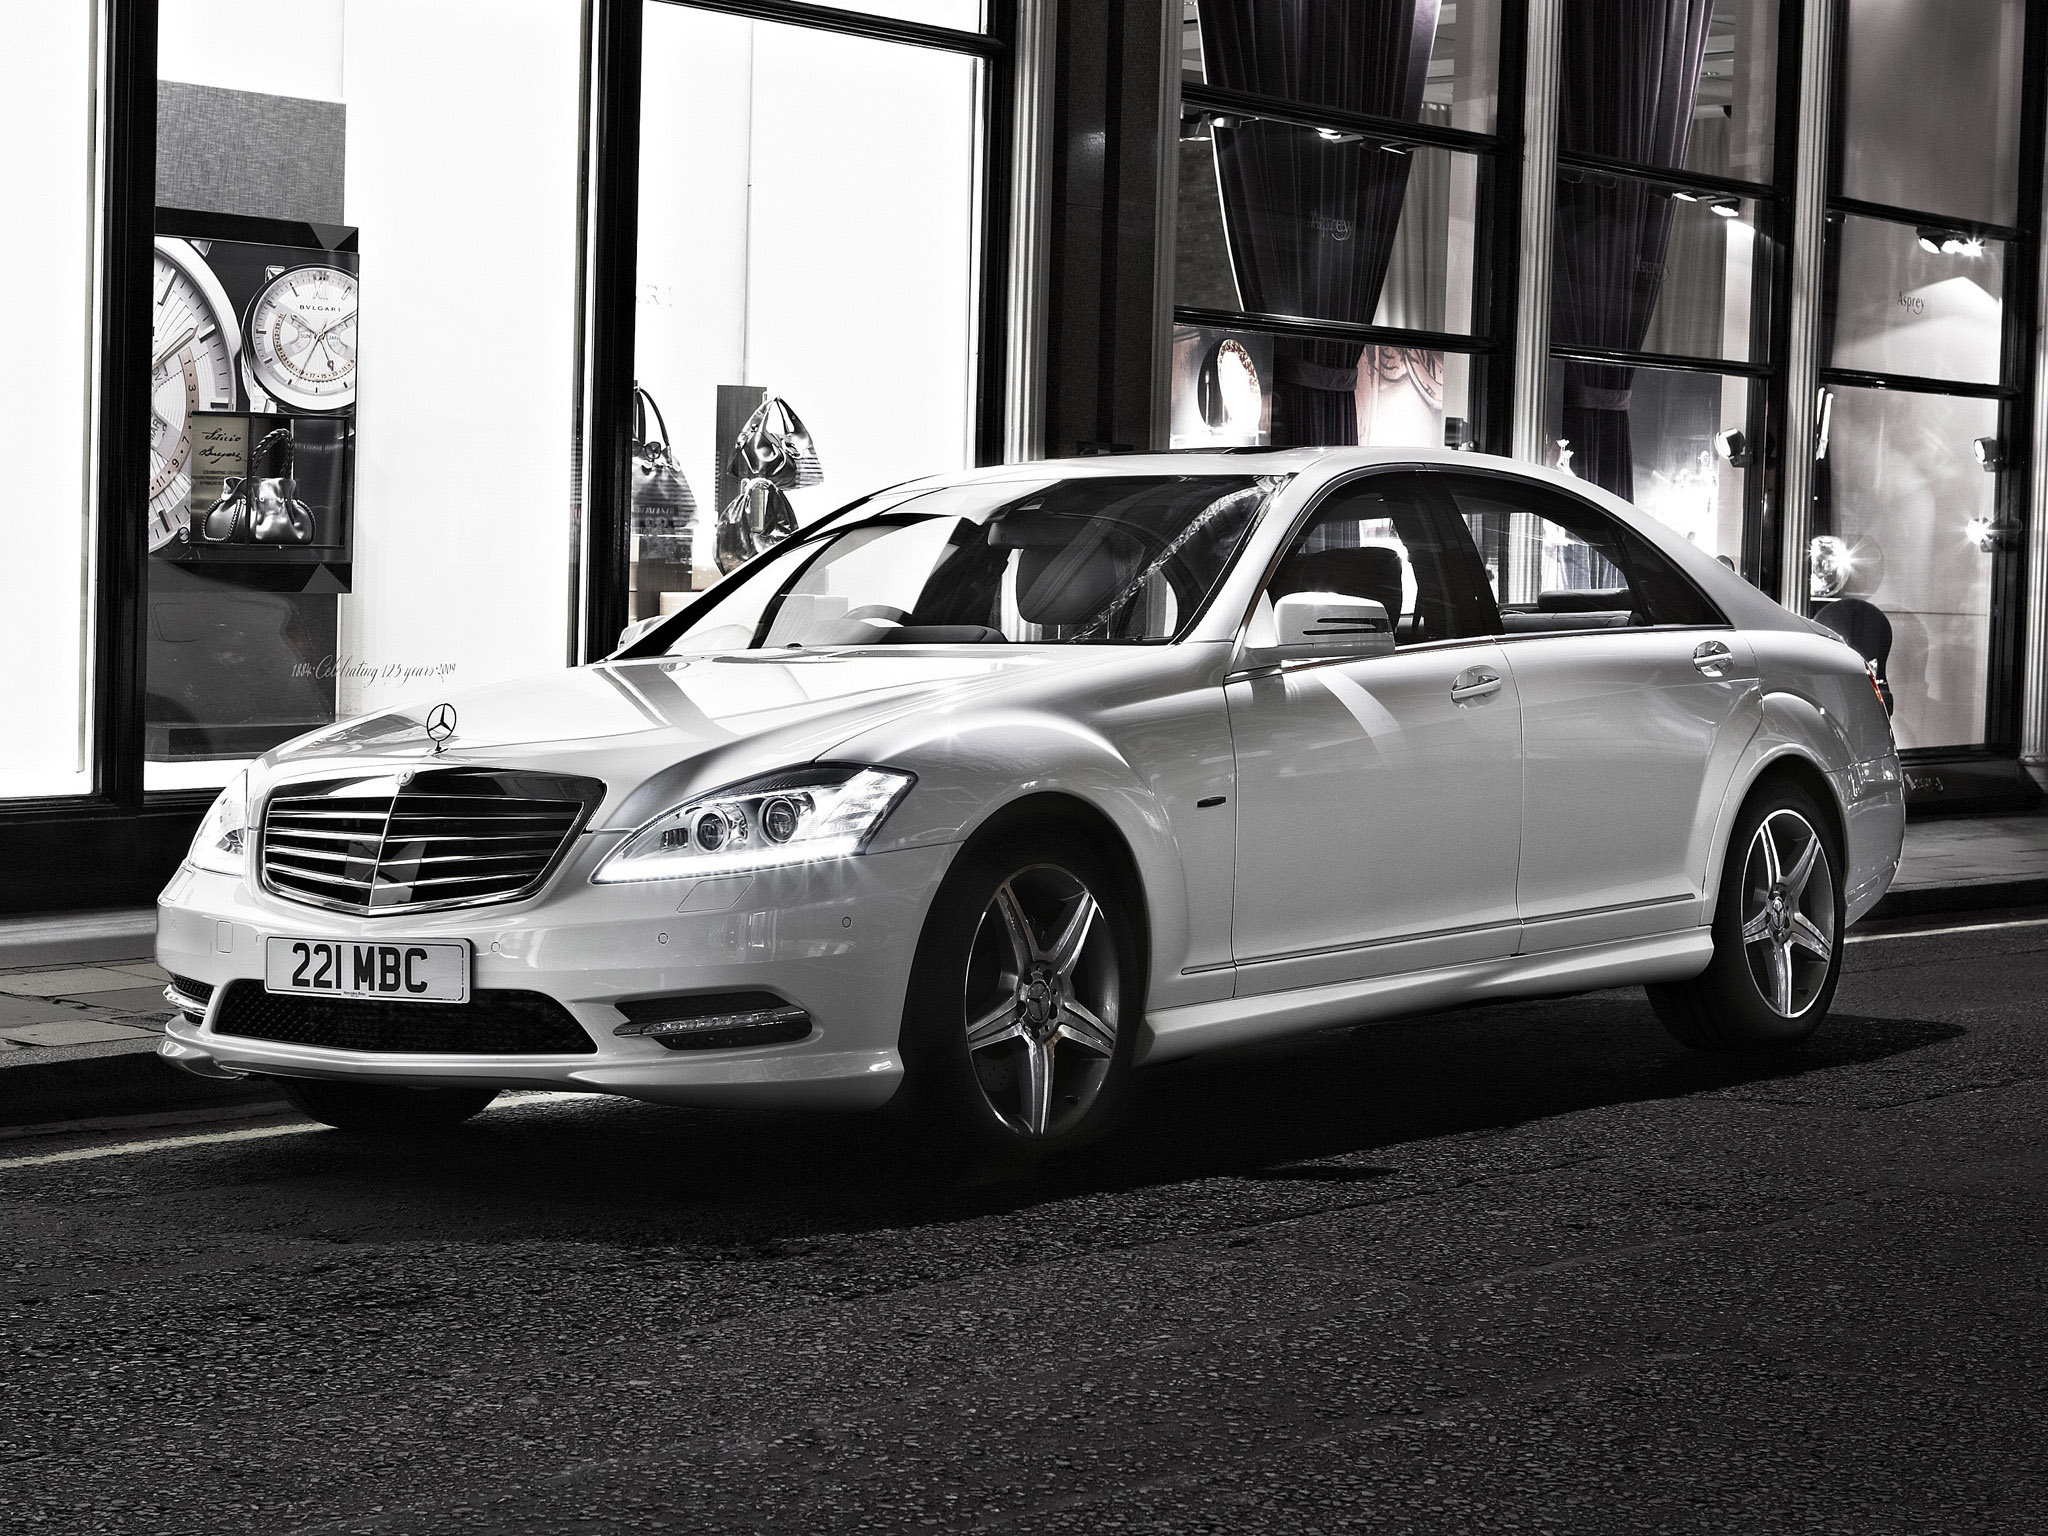 mercedes s klasse s350 cdi amg sports package uk 2009 mercedes s klasse s350 cdi amg sports. Black Bedroom Furniture Sets. Home Design Ideas